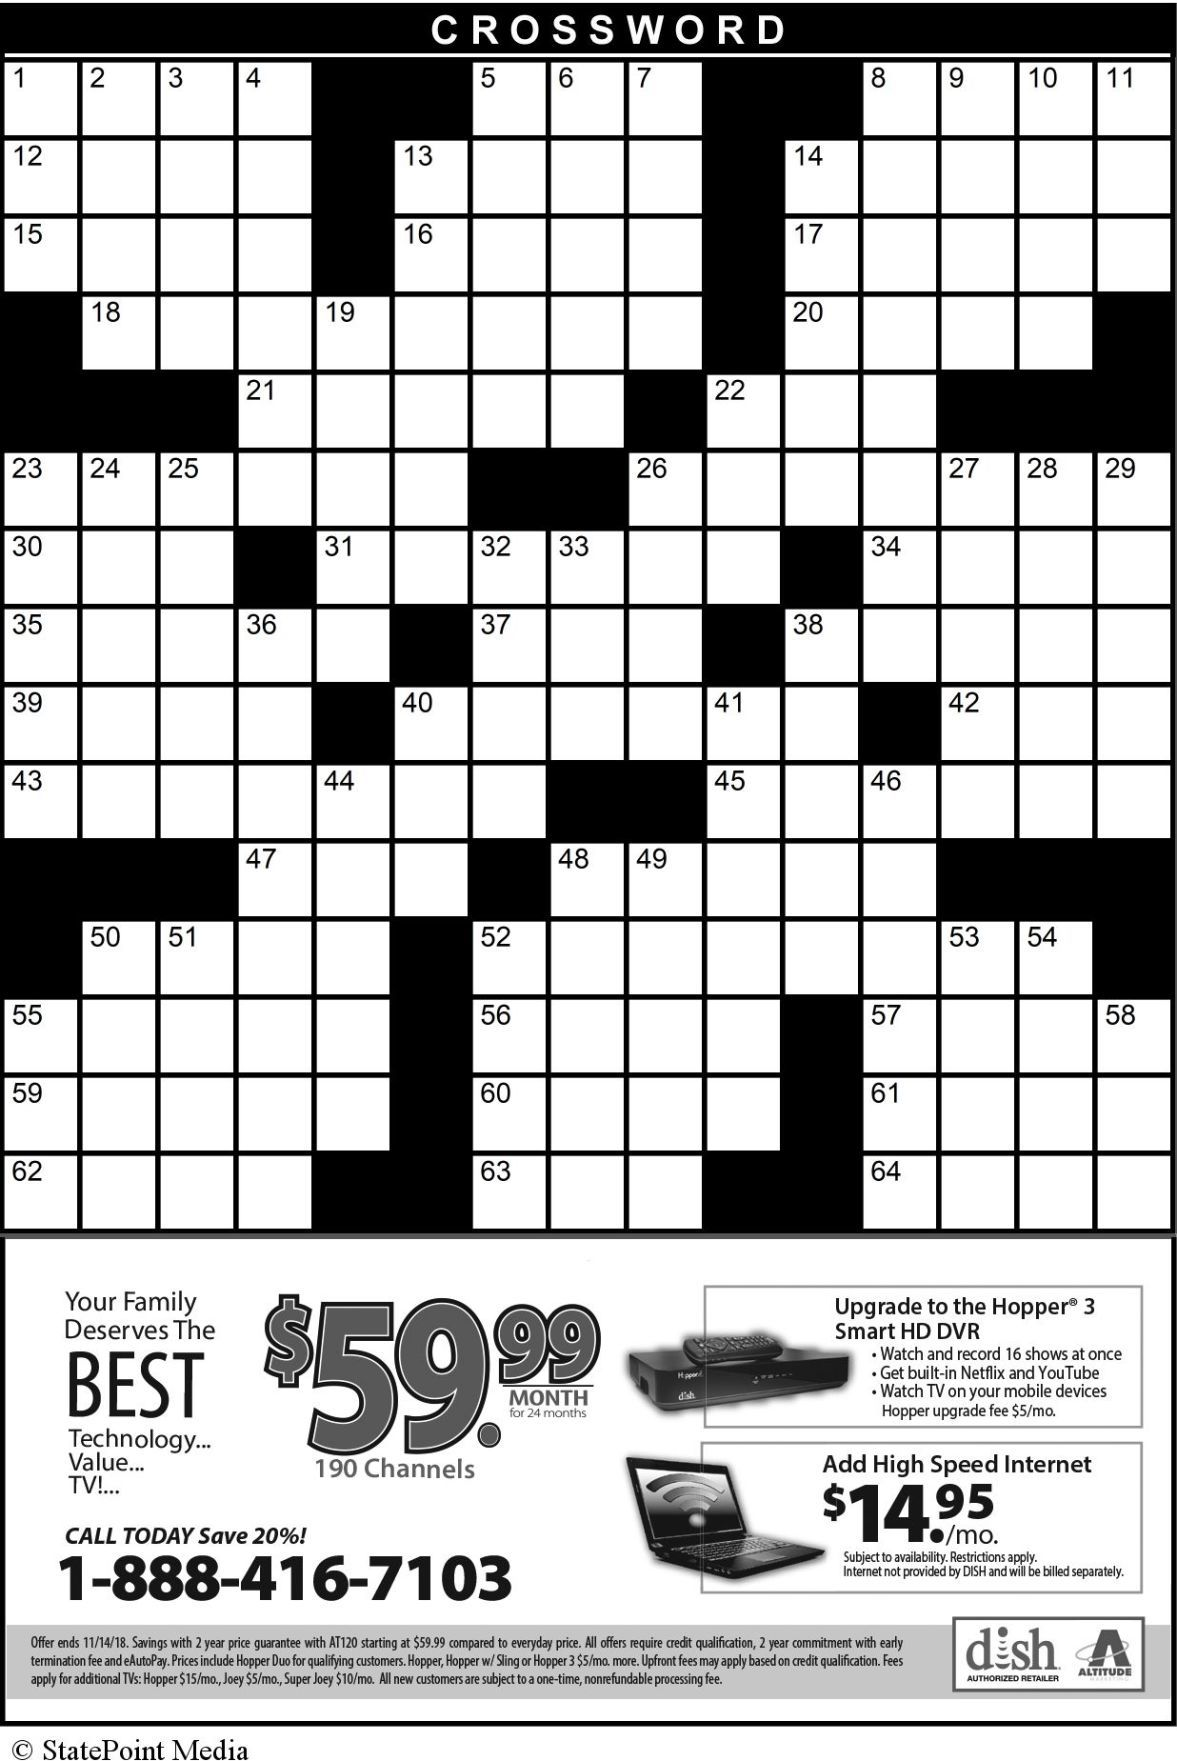 STATEPOINT CROSSWORD